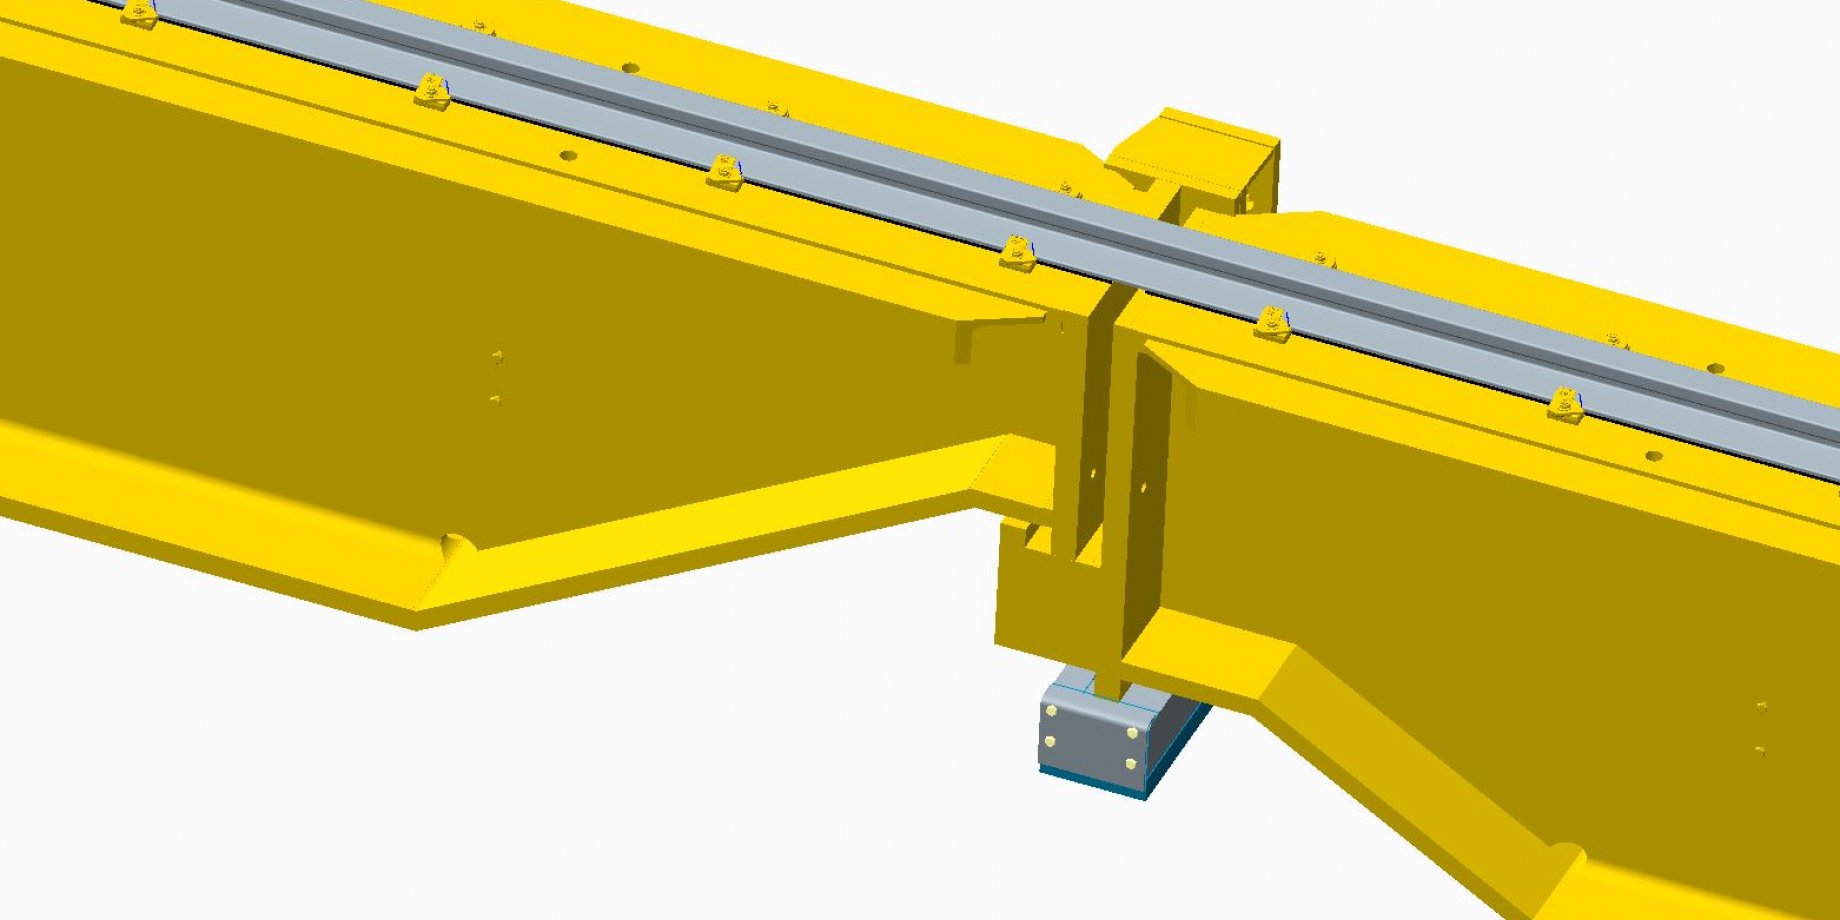 Cranes_Crane services_Two expansion joints were redesigned_TCS_Timmers